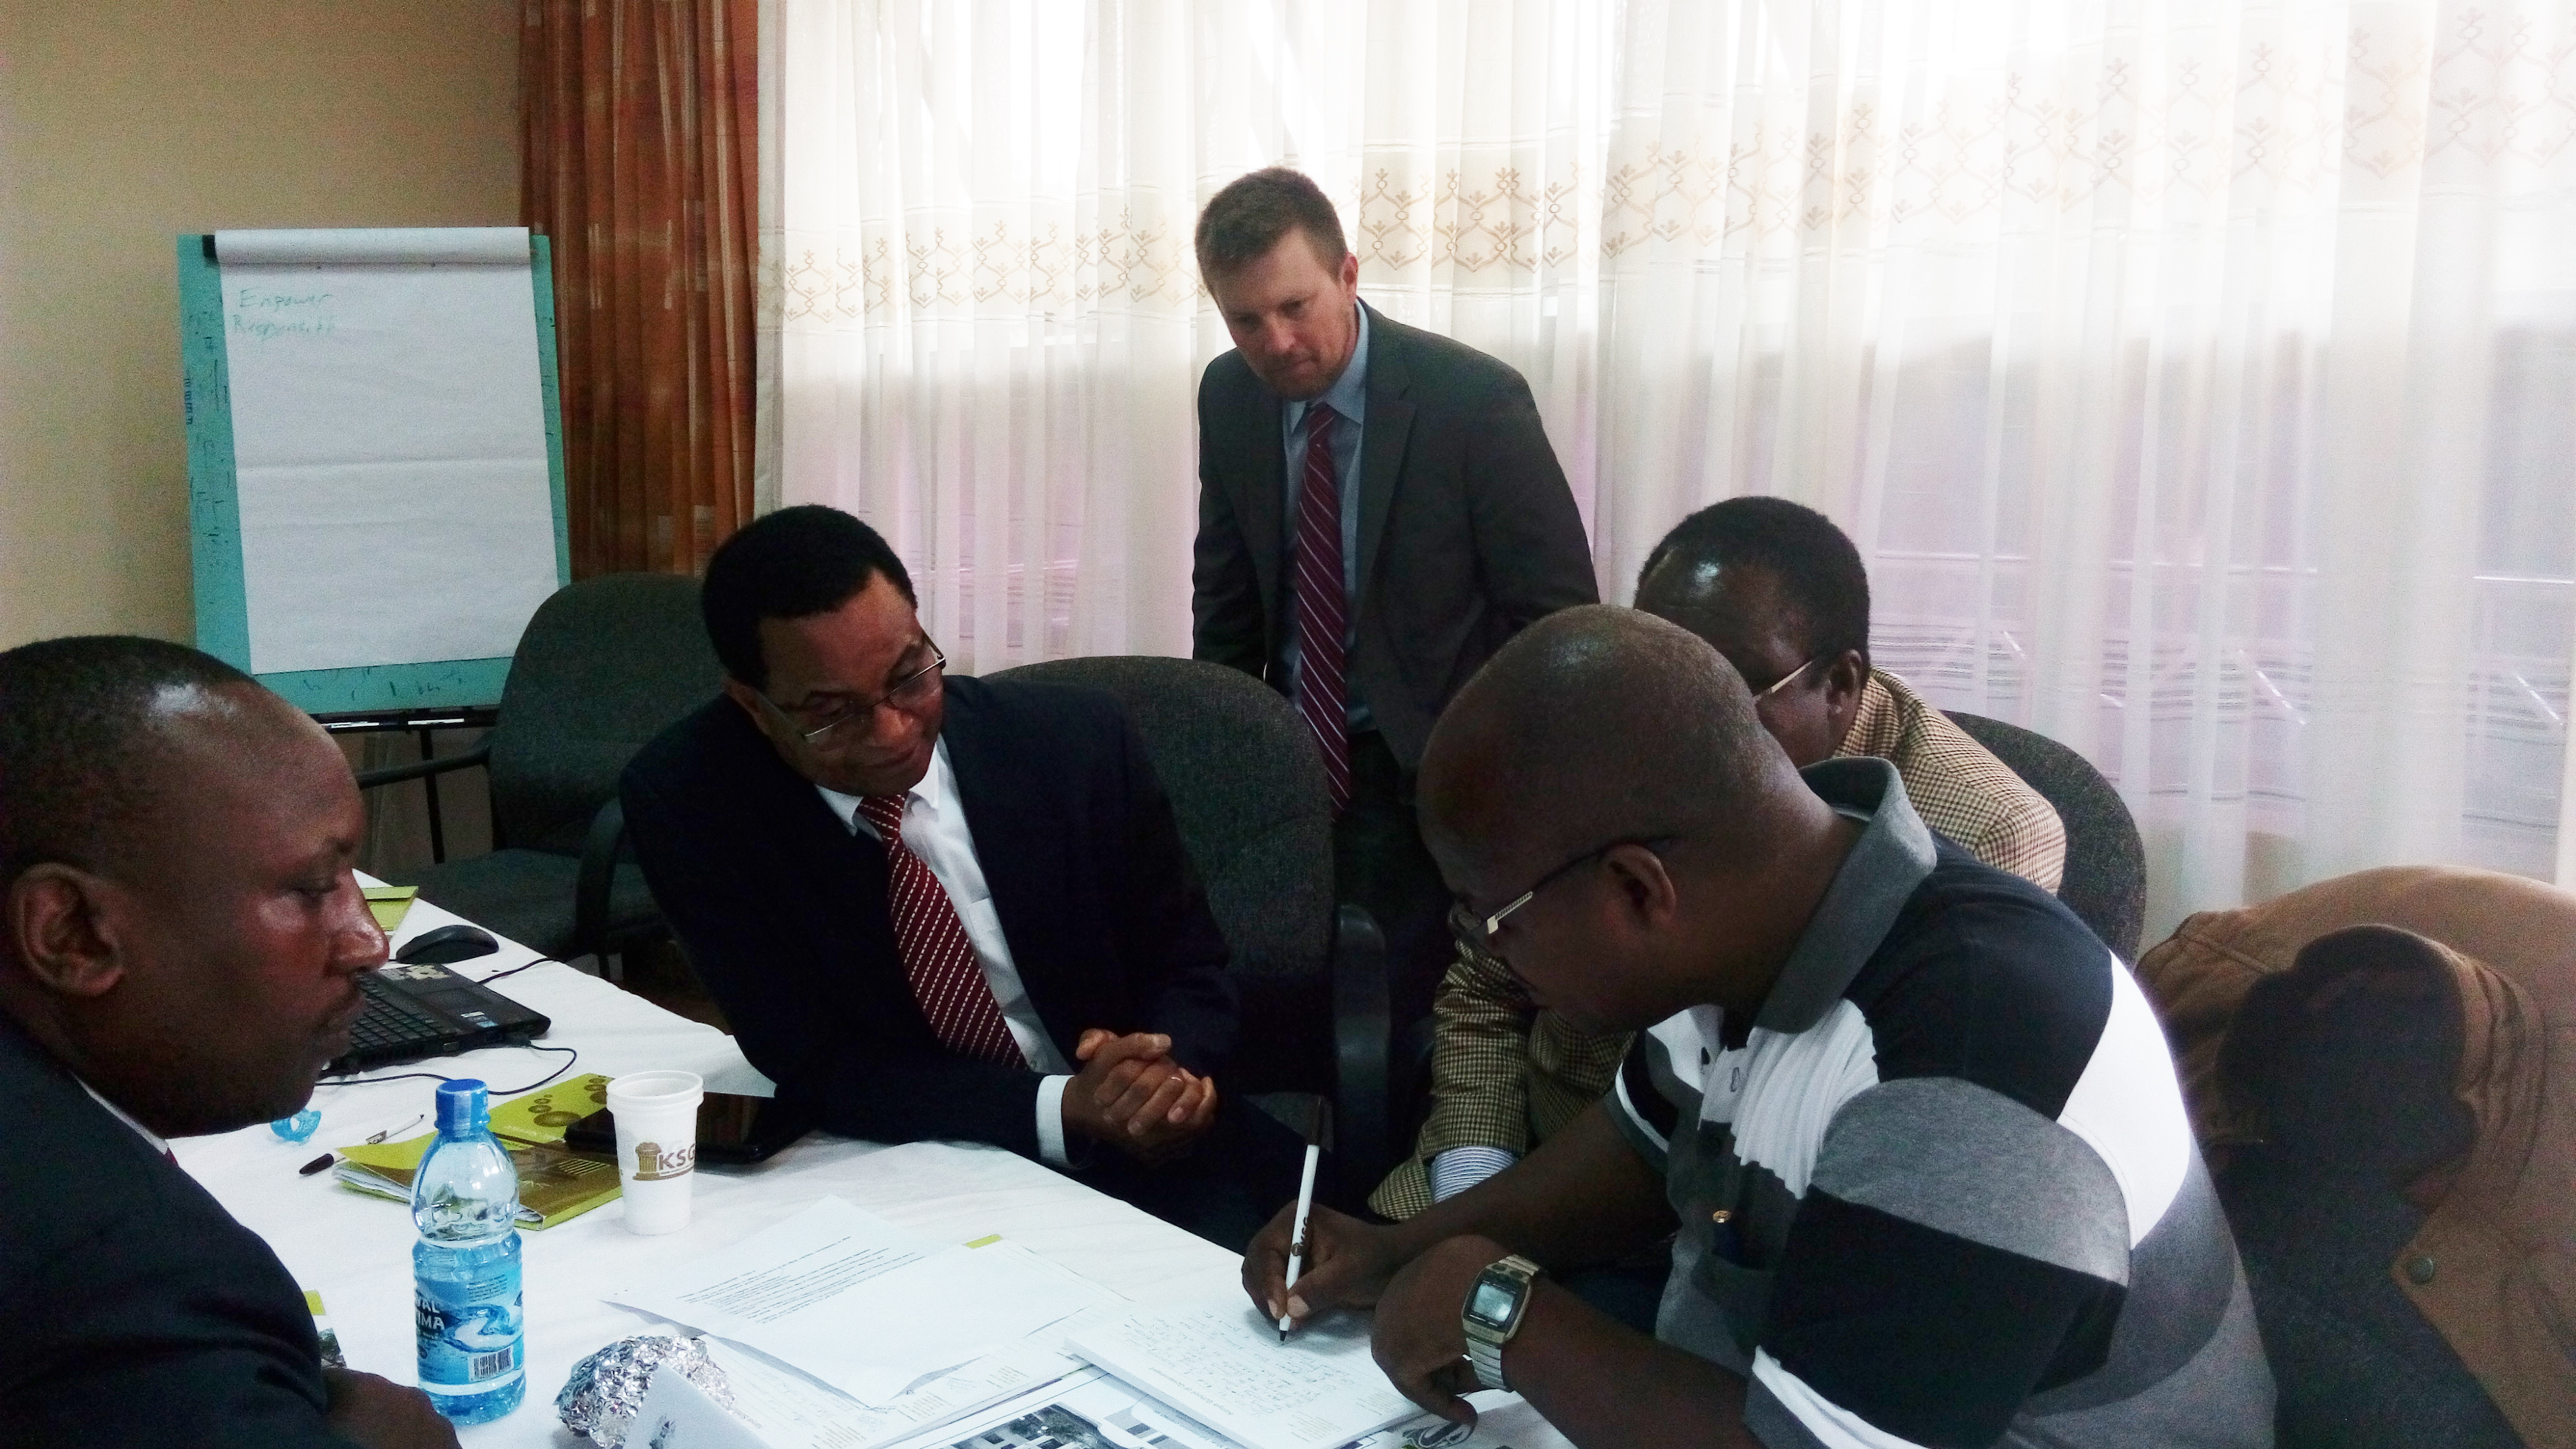 Patrick Shepherd, OGE Senior Instructor, works with senior faculty at Kenya School of Government